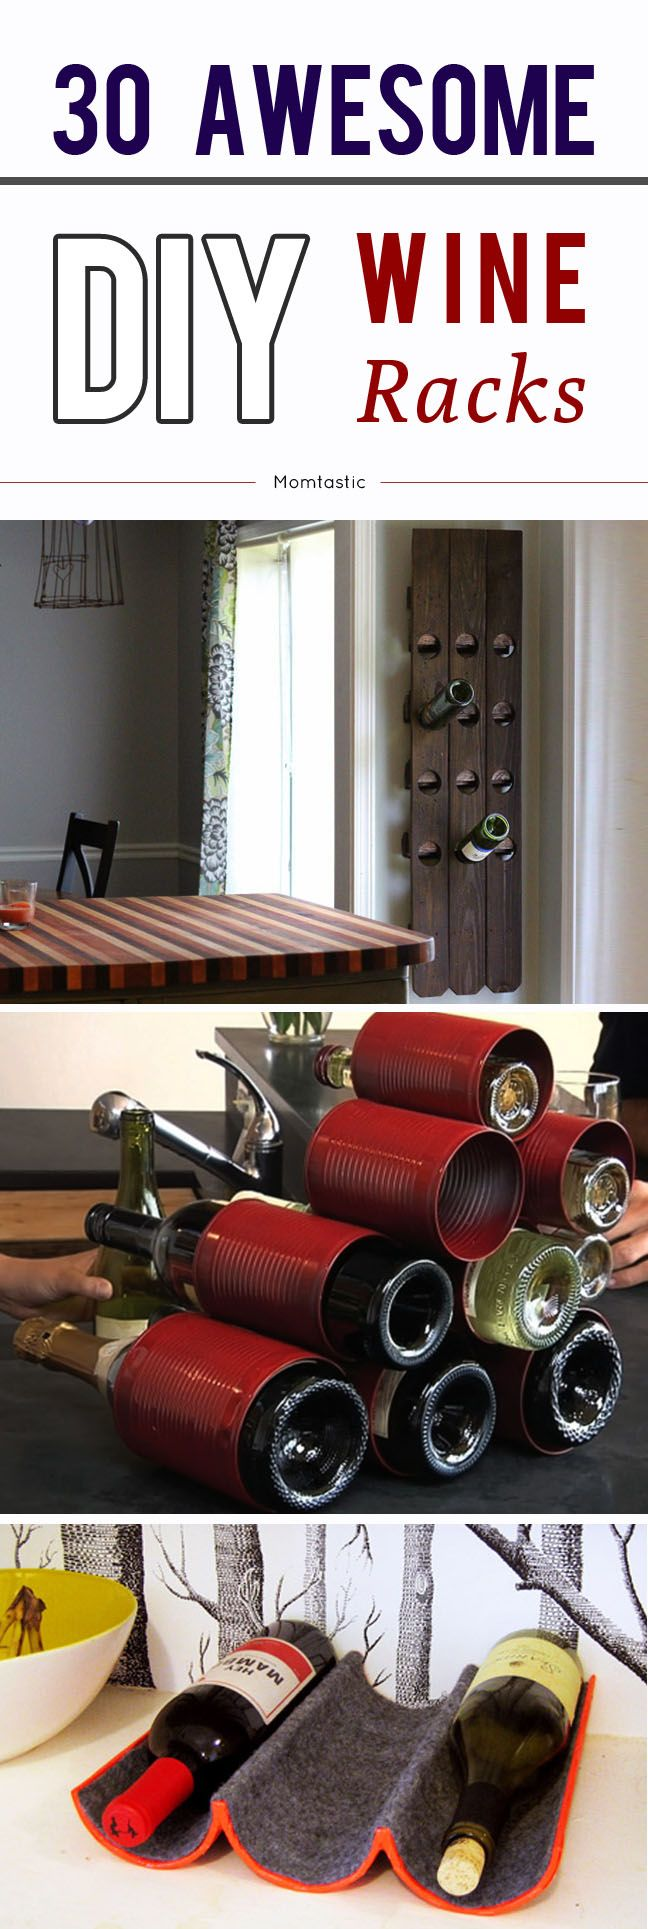 51 Awesome Diy Wine Racks You Can Make Right Now Diy Wine Rack Diy Wine Wine Decor